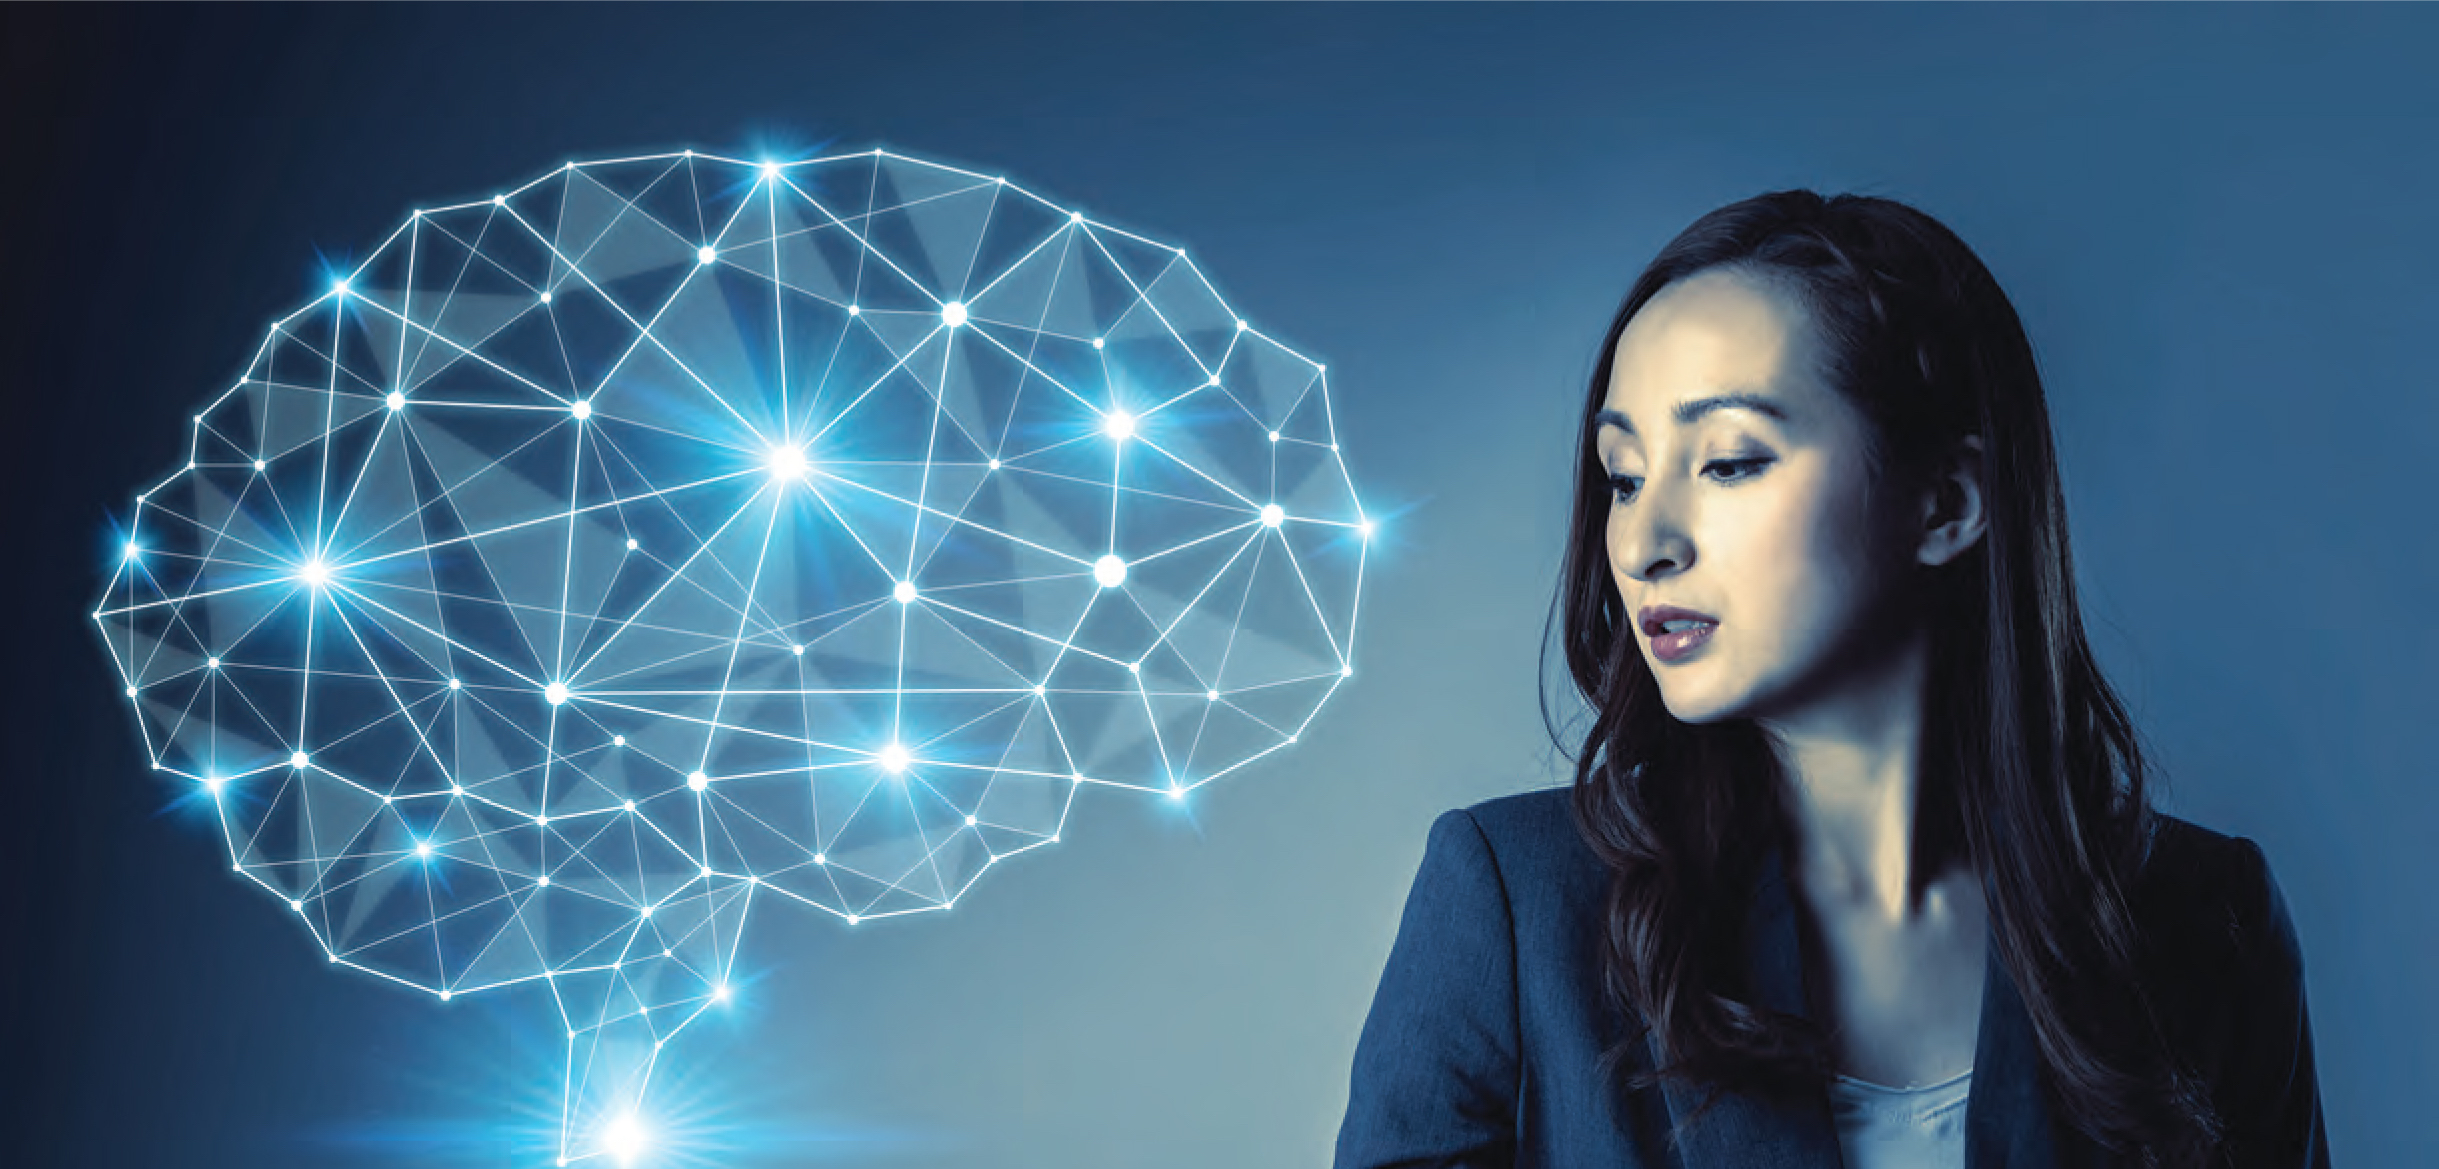 Meeting the Challenge of Artificial Intelligence